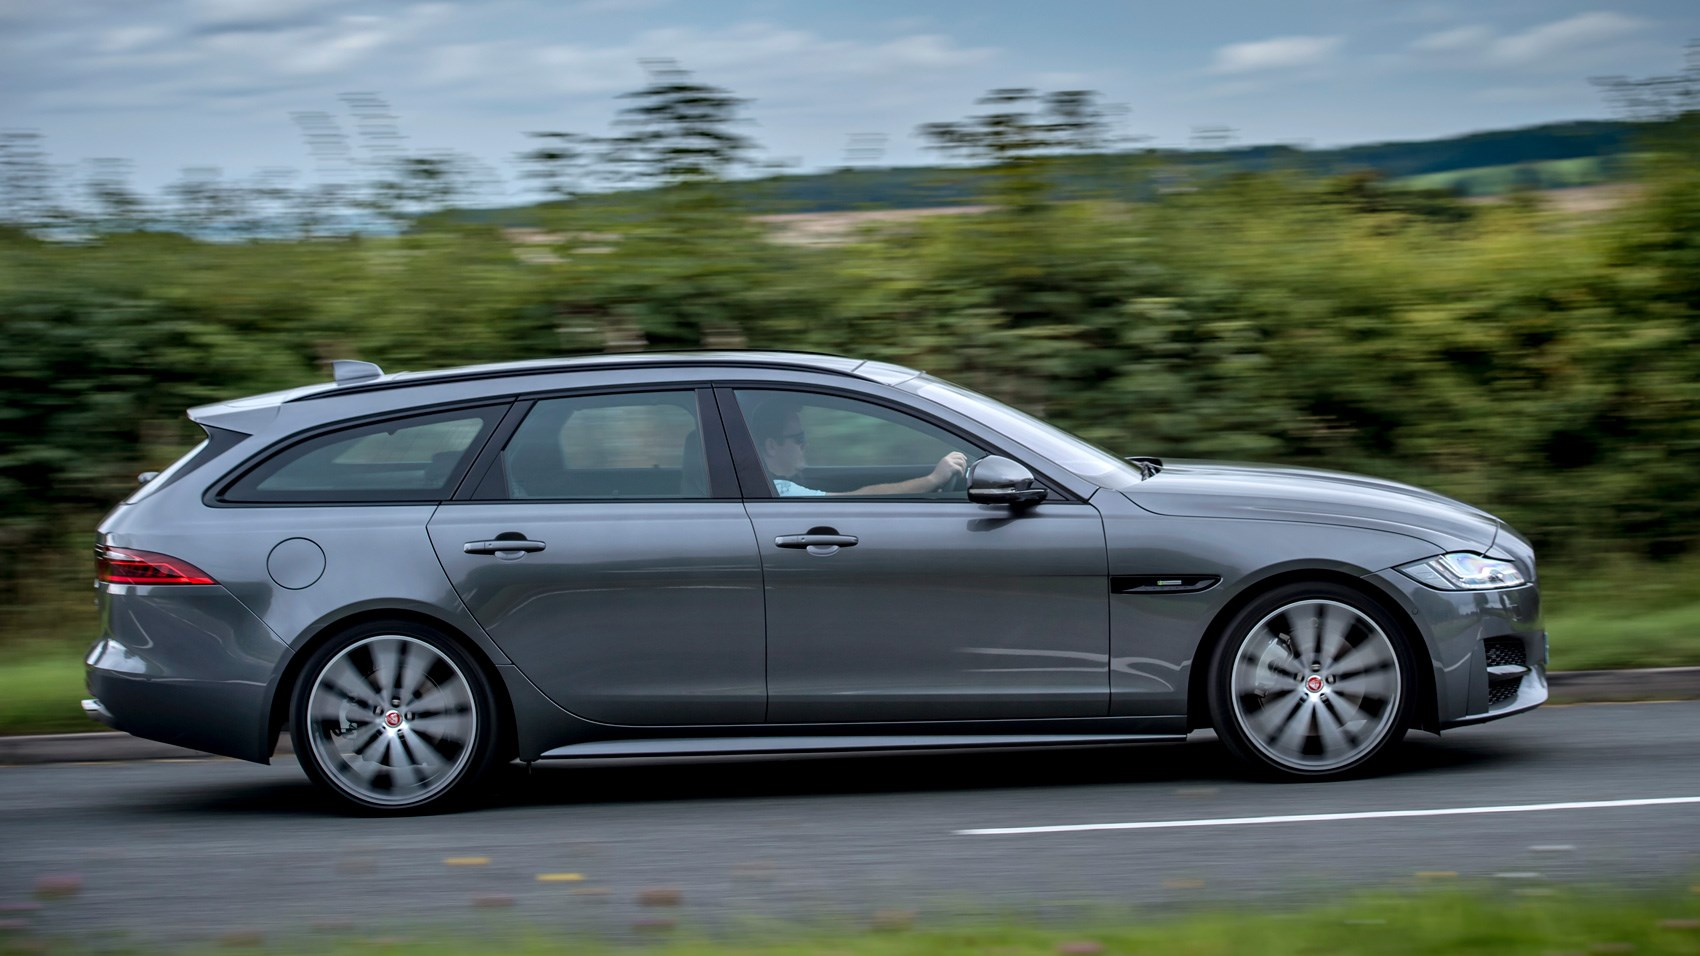 jaguar xf sportbrake estate 2017 review car magazine. Black Bedroom Furniture Sets. Home Design Ideas